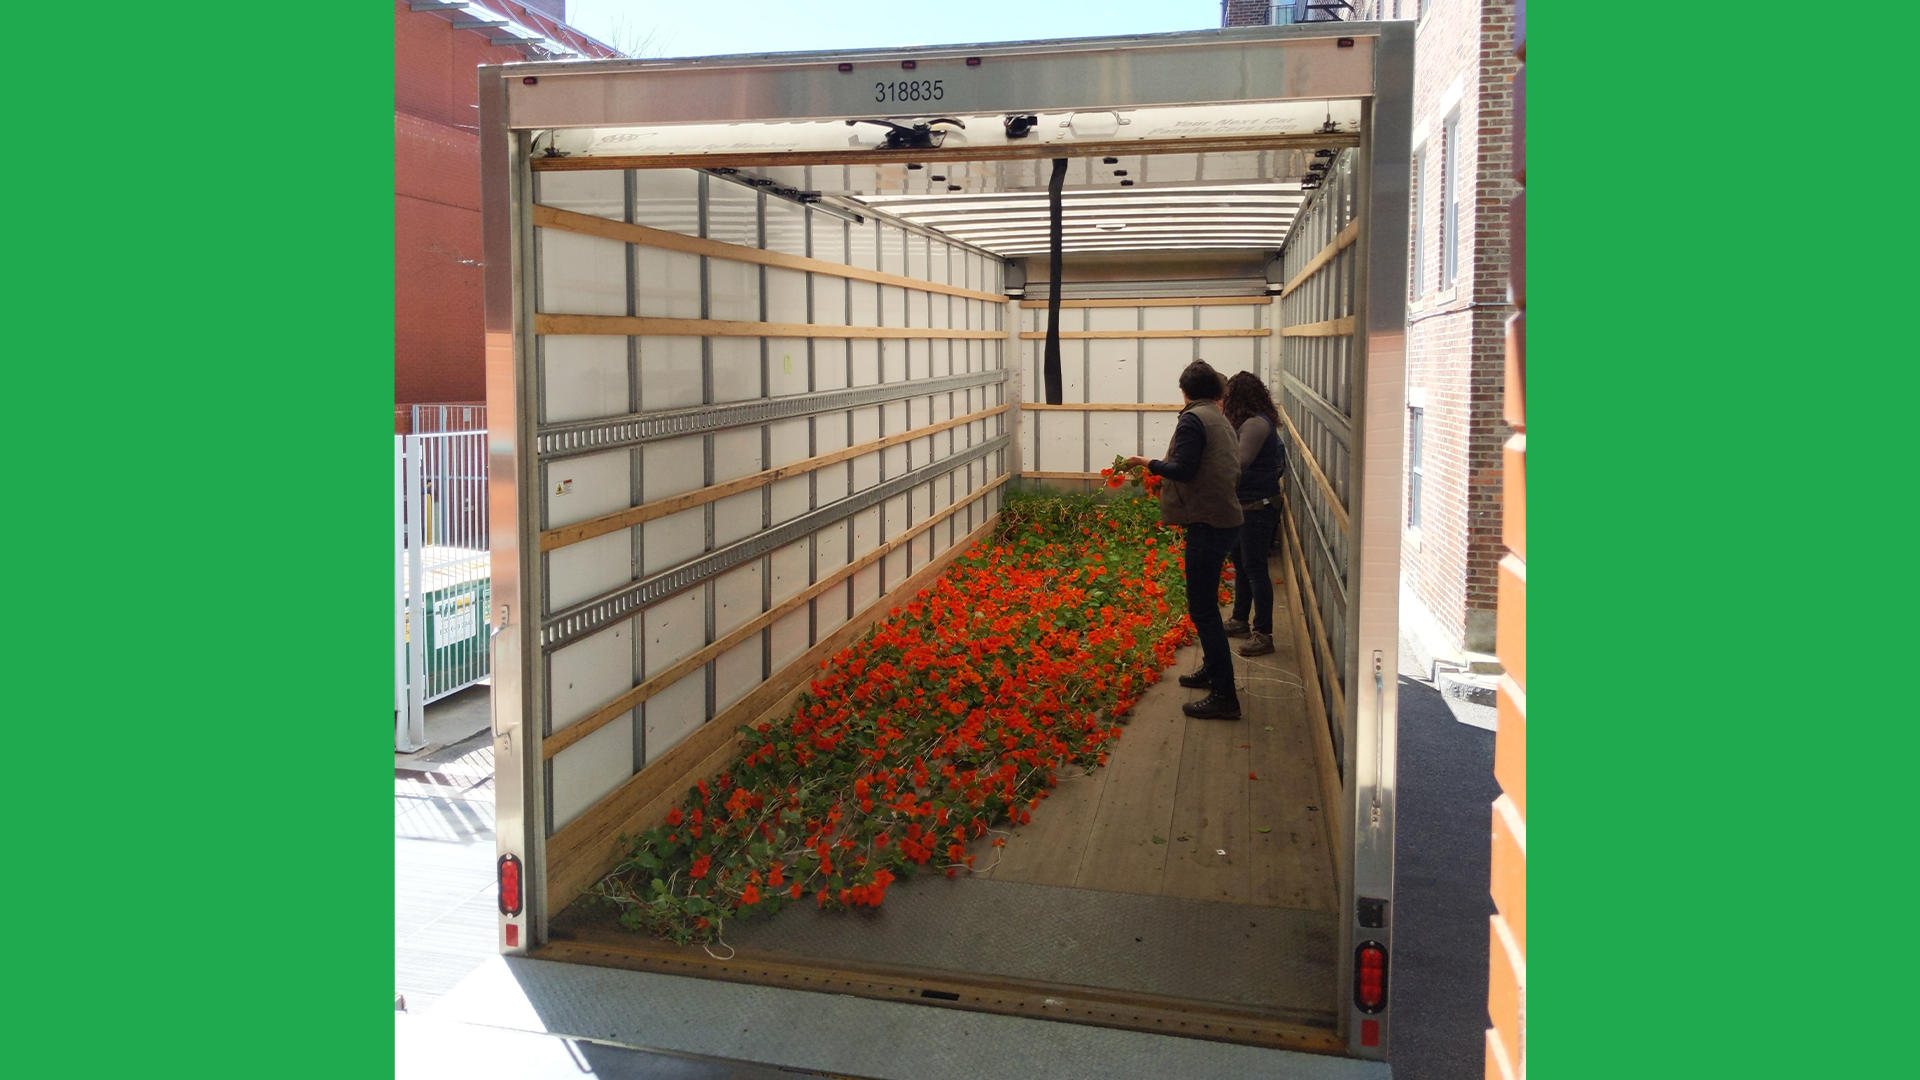 Nasturtiums in the Horticulture truck, 2019. They take up the full length of the truck in transport!